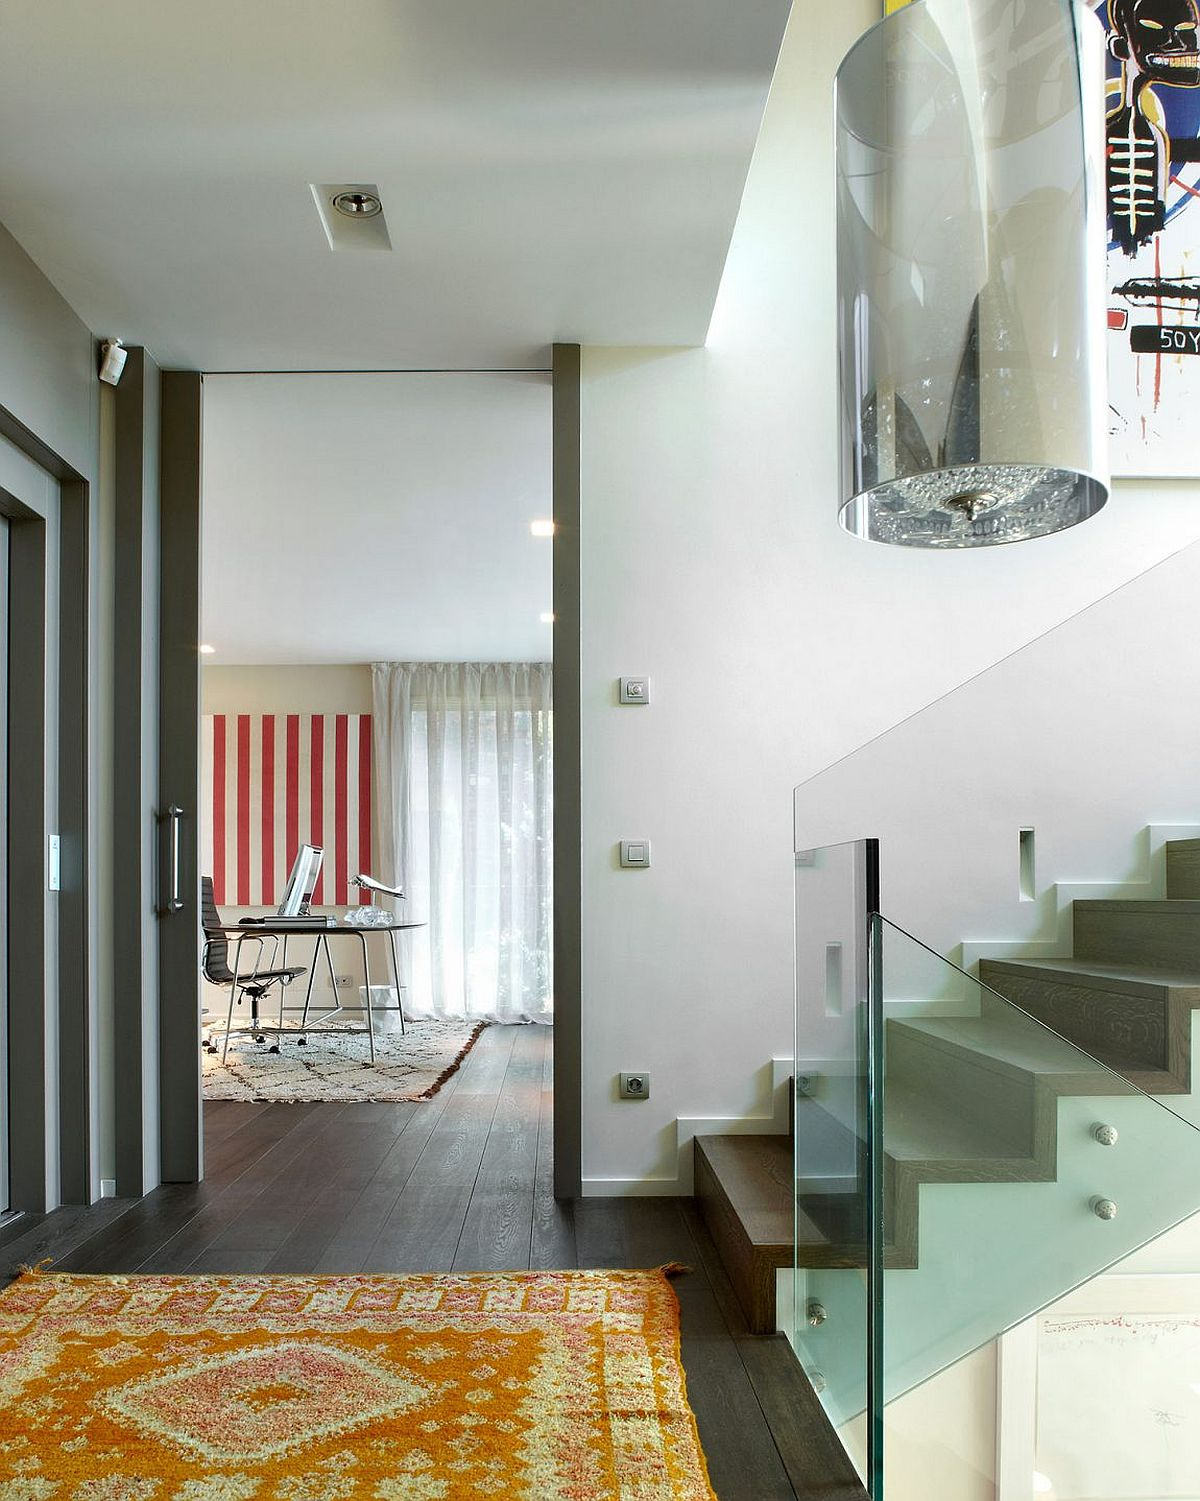 View of the home office and staircase that divides the home into two identical halfs